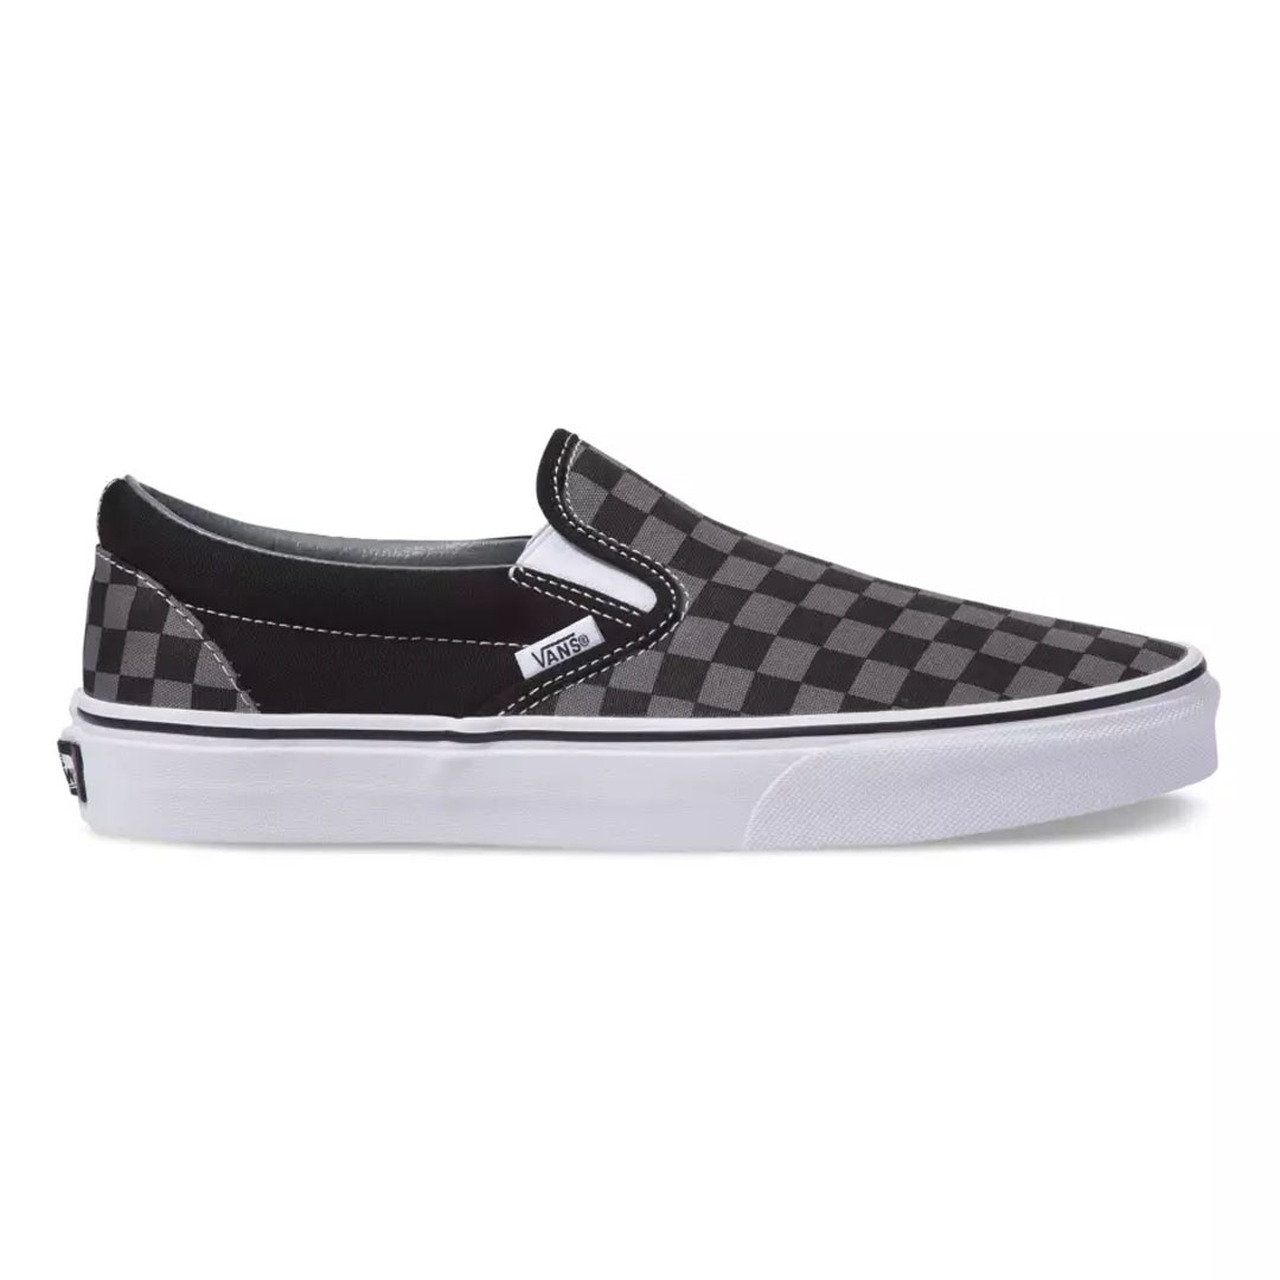 Vans Classic Checkerboard Slip On Shoes - Black/Pewter Check